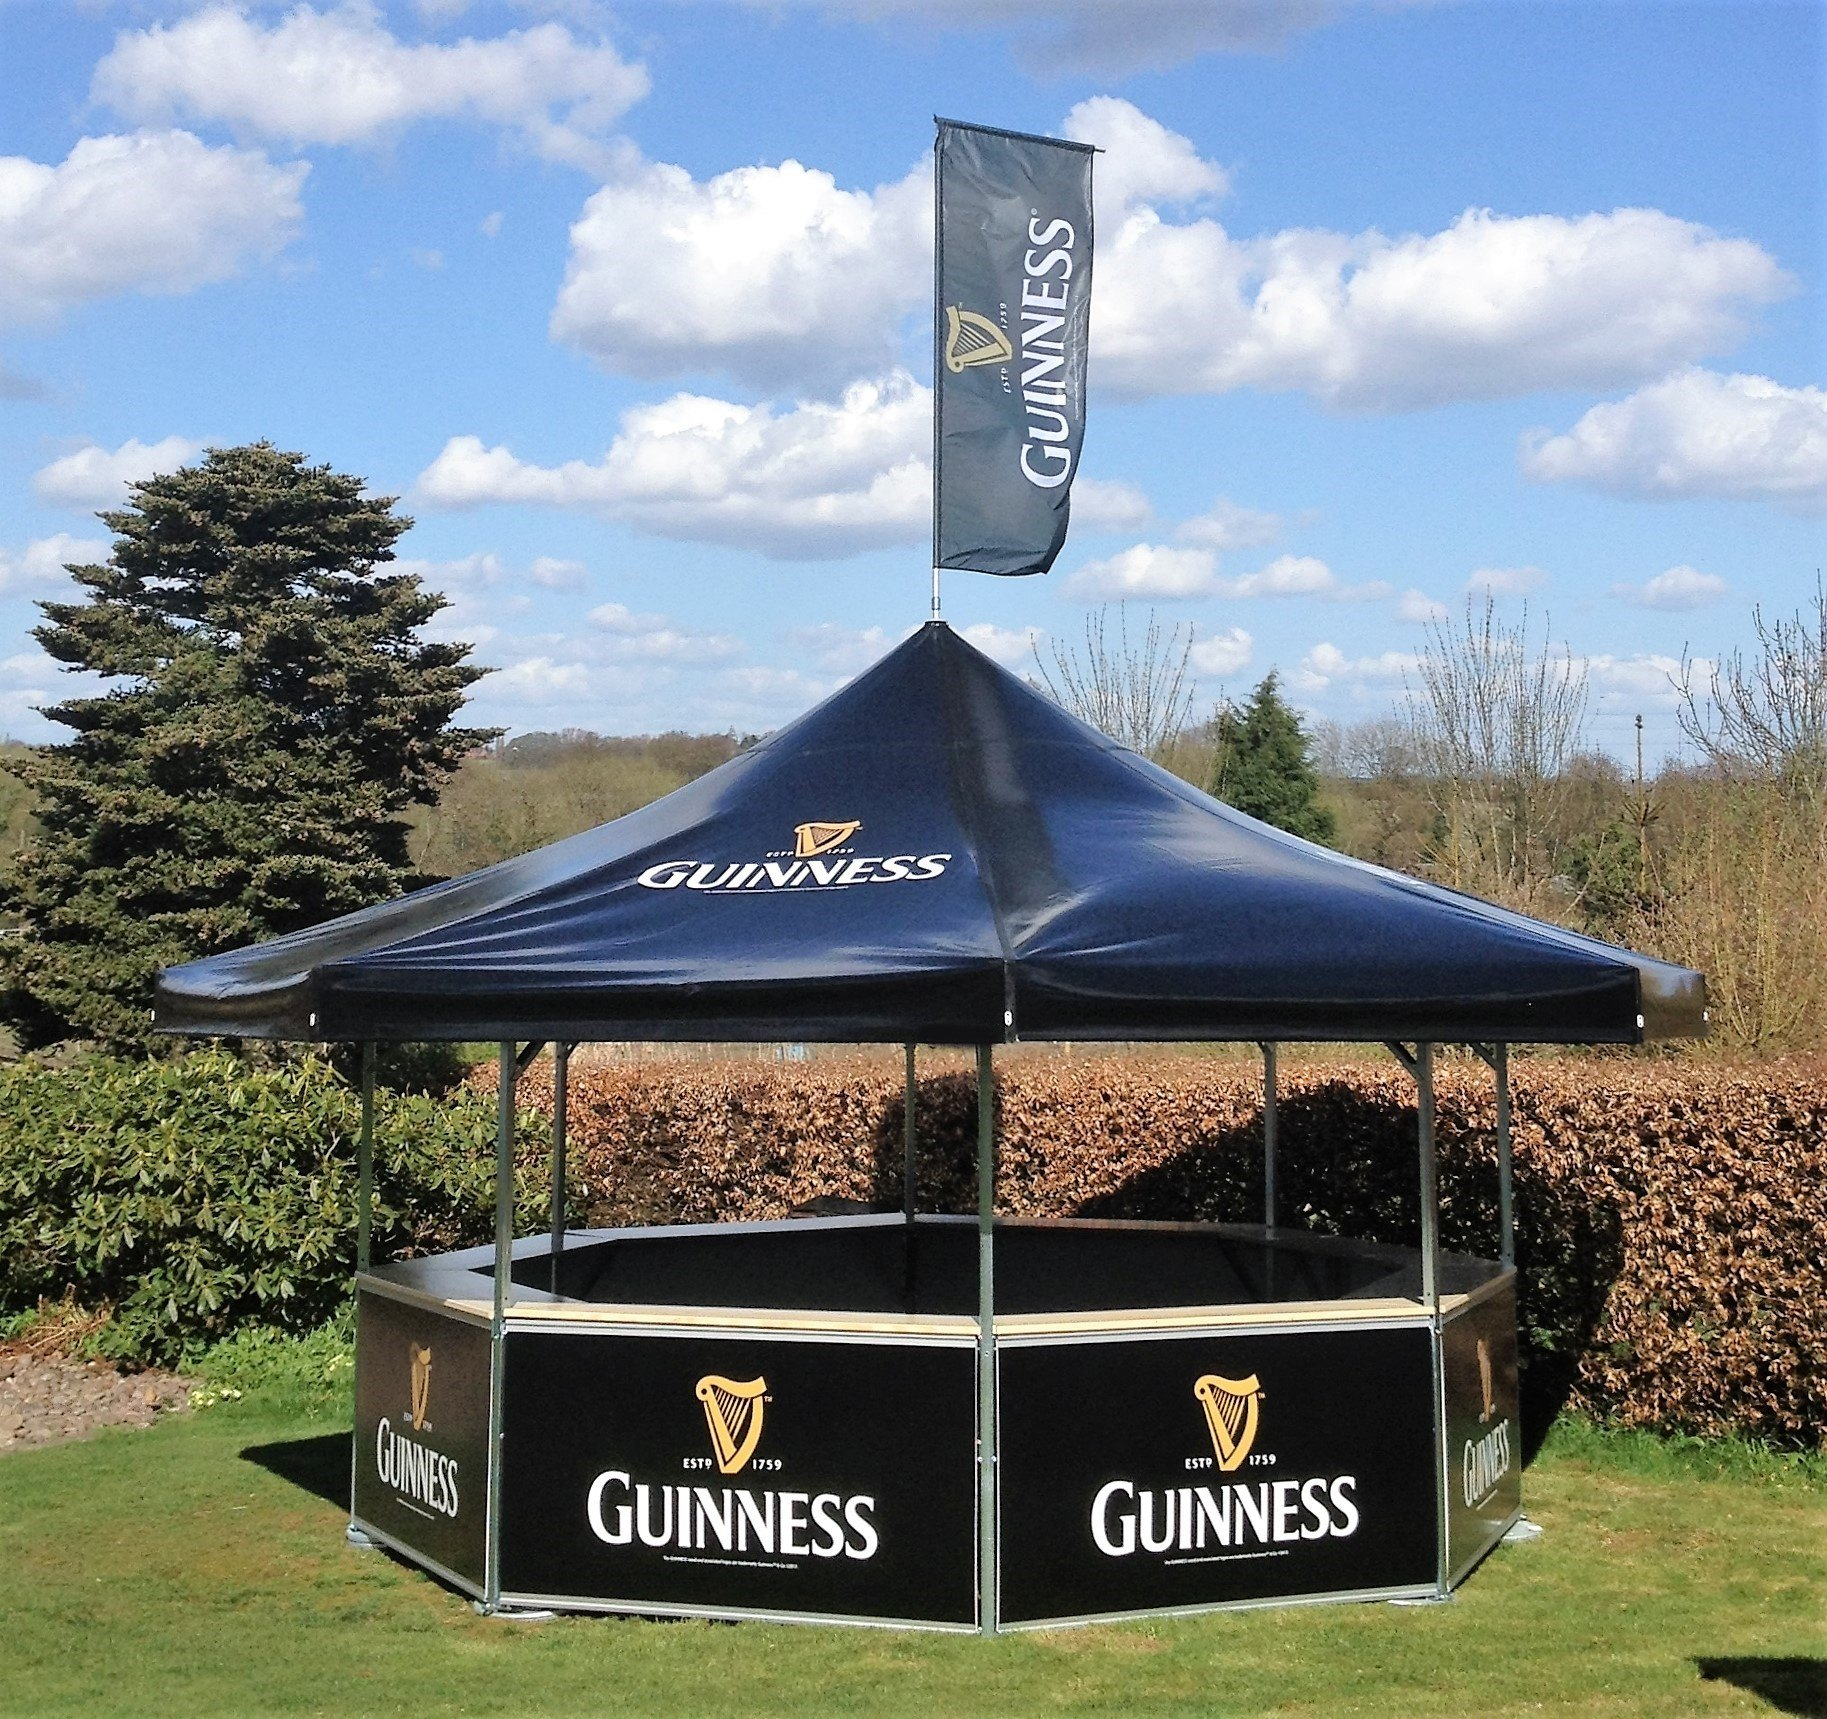 <p>Event, Mobile &amp; Stadia Bars &#8211; Tents &amp; Marquees &#8211; Octagonal Pavilion &#8211; Outdoor Guinness Event Bar.</p> <p>&nbsp;</p> <p>Fully branded Guinness Bar used at racecourse events etc.  Can be used at football stadiums hosting concerts and other events.</p> <p>&nbsp;</p> <p>Includes fully branded roof flag accessory enabling better visibility of location of bar at event or venue</p>